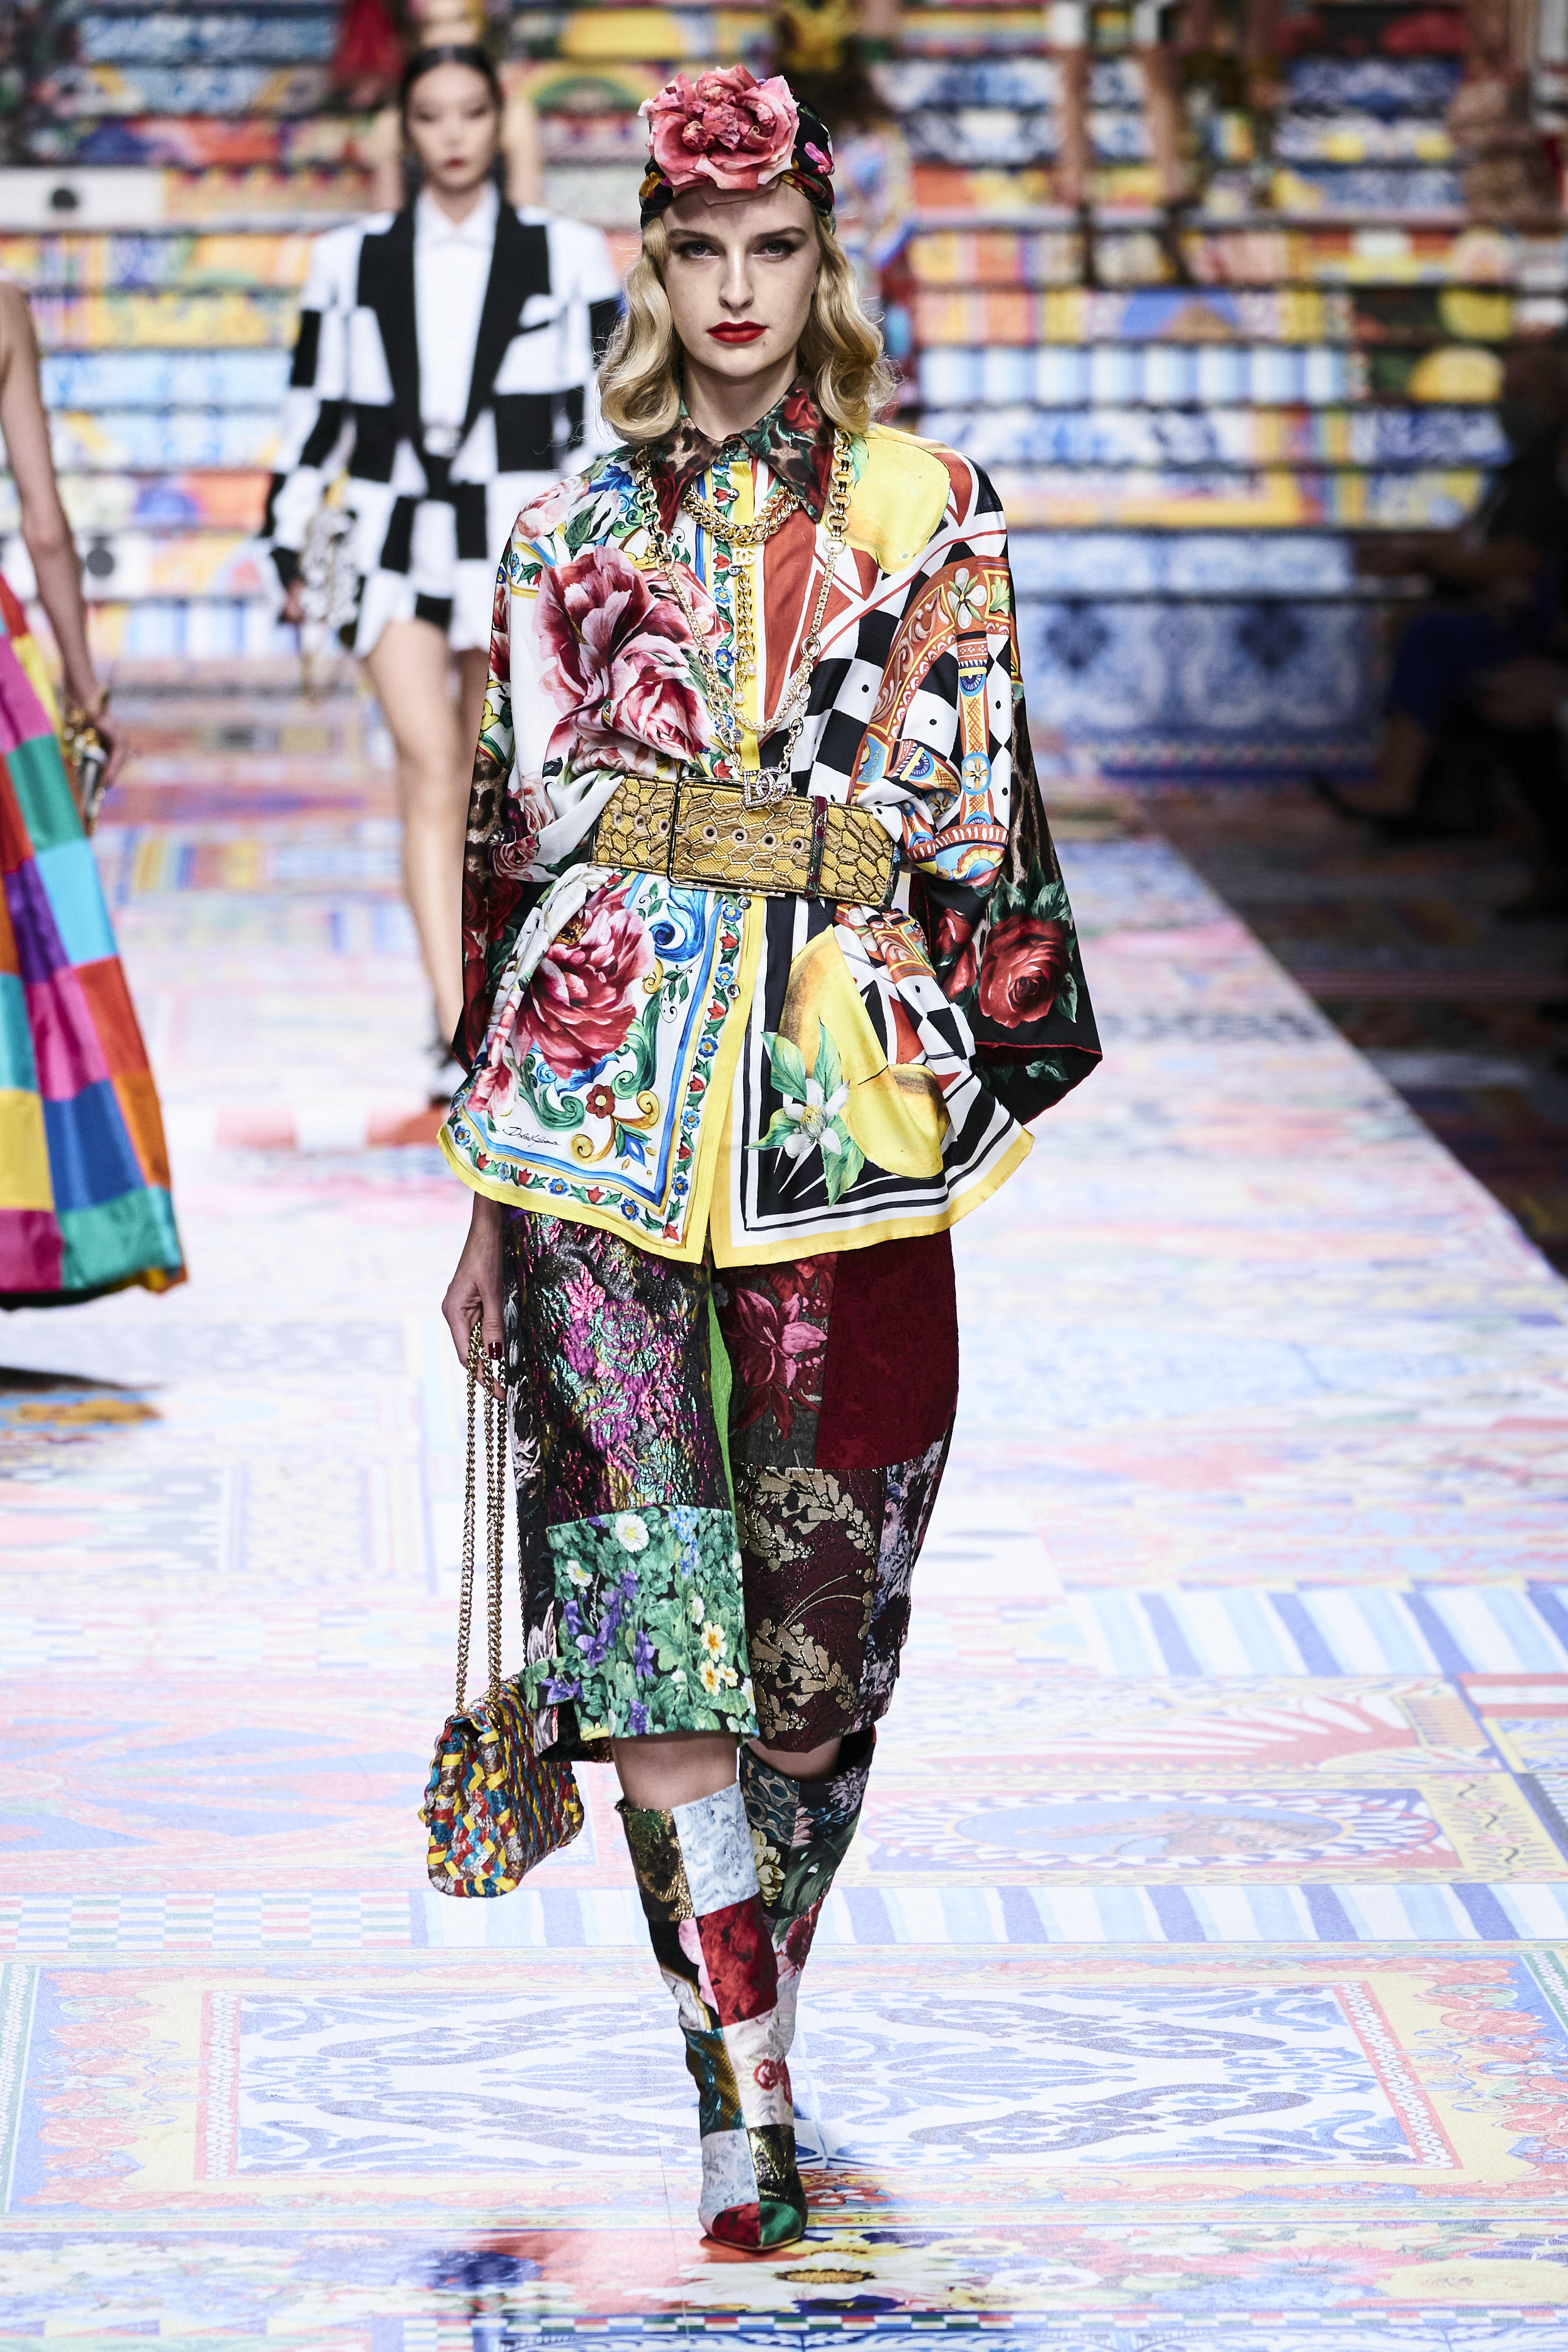 Prints galore: Dolce & Gabbana and Versace's Spring/Summer '21 collection (фото 8)